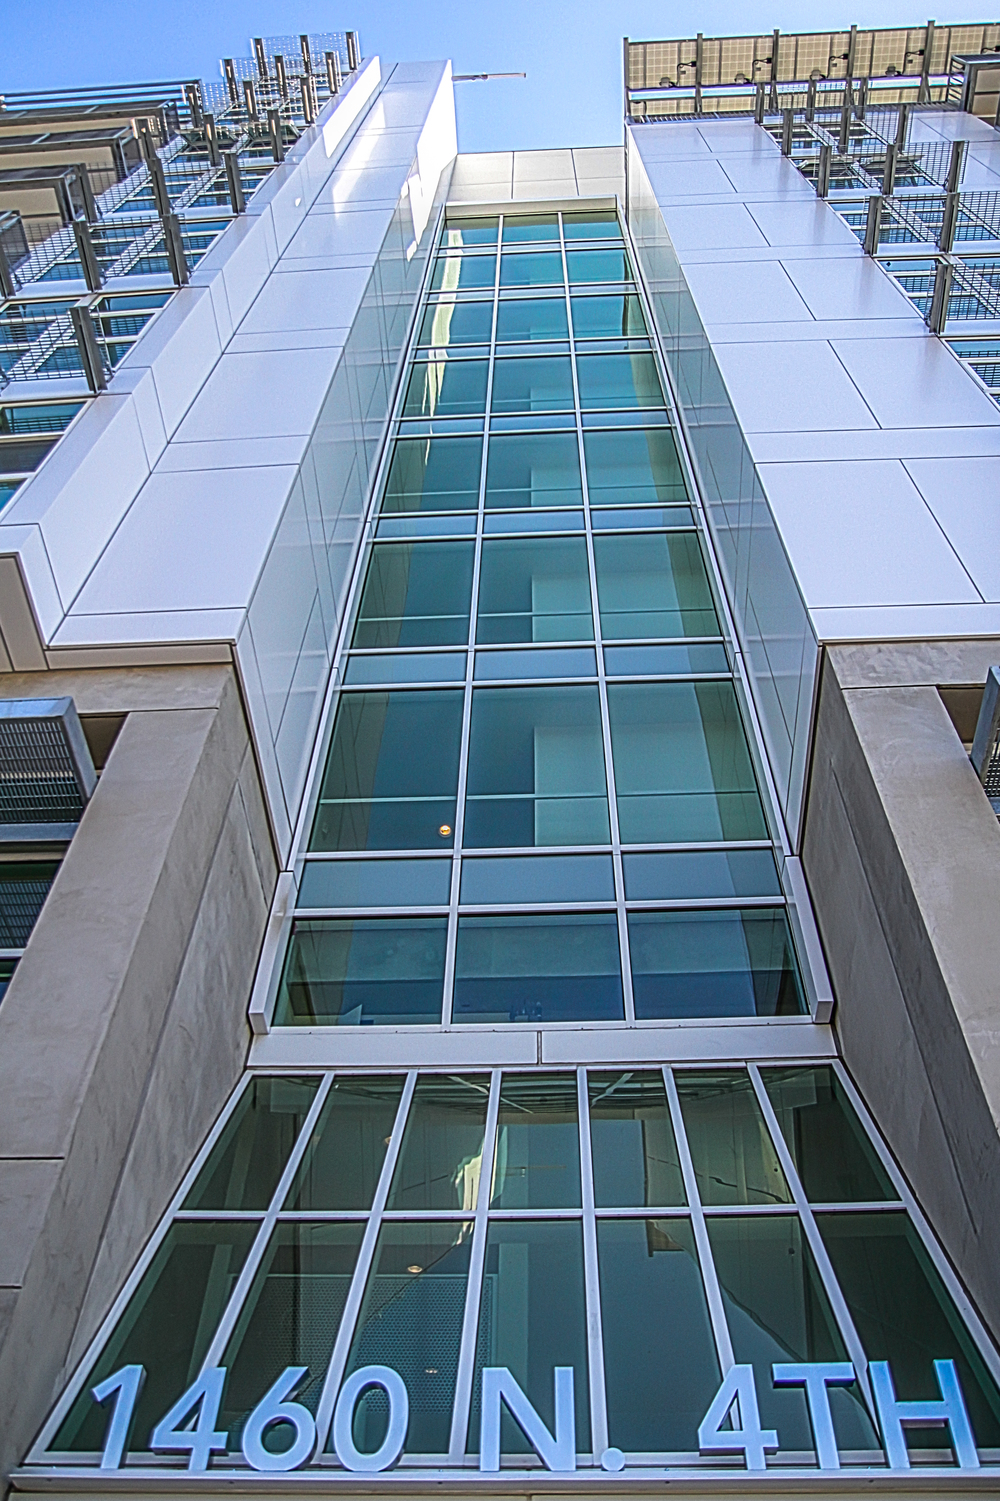 fsa curtain wall.jpg